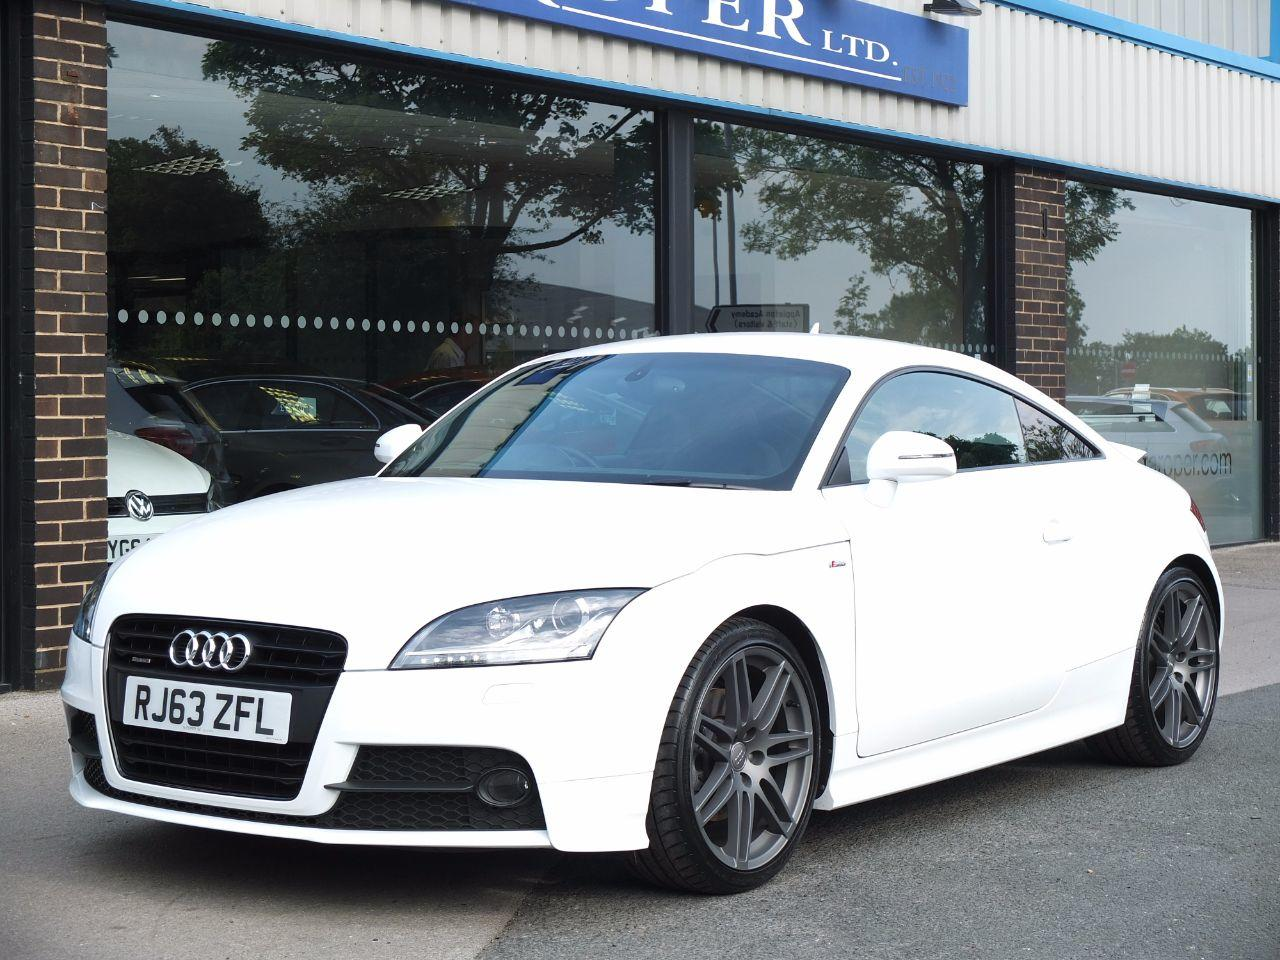 Audi TT Coupe 2.0 TDI quattro Black Edition +++Spec Coupe Diesel Ibis WhiteAudi TT Coupe 2.0 TDI quattro Black Edition +++Spec Coupe Diesel Ibis White at fa Roper Ltd Bradford